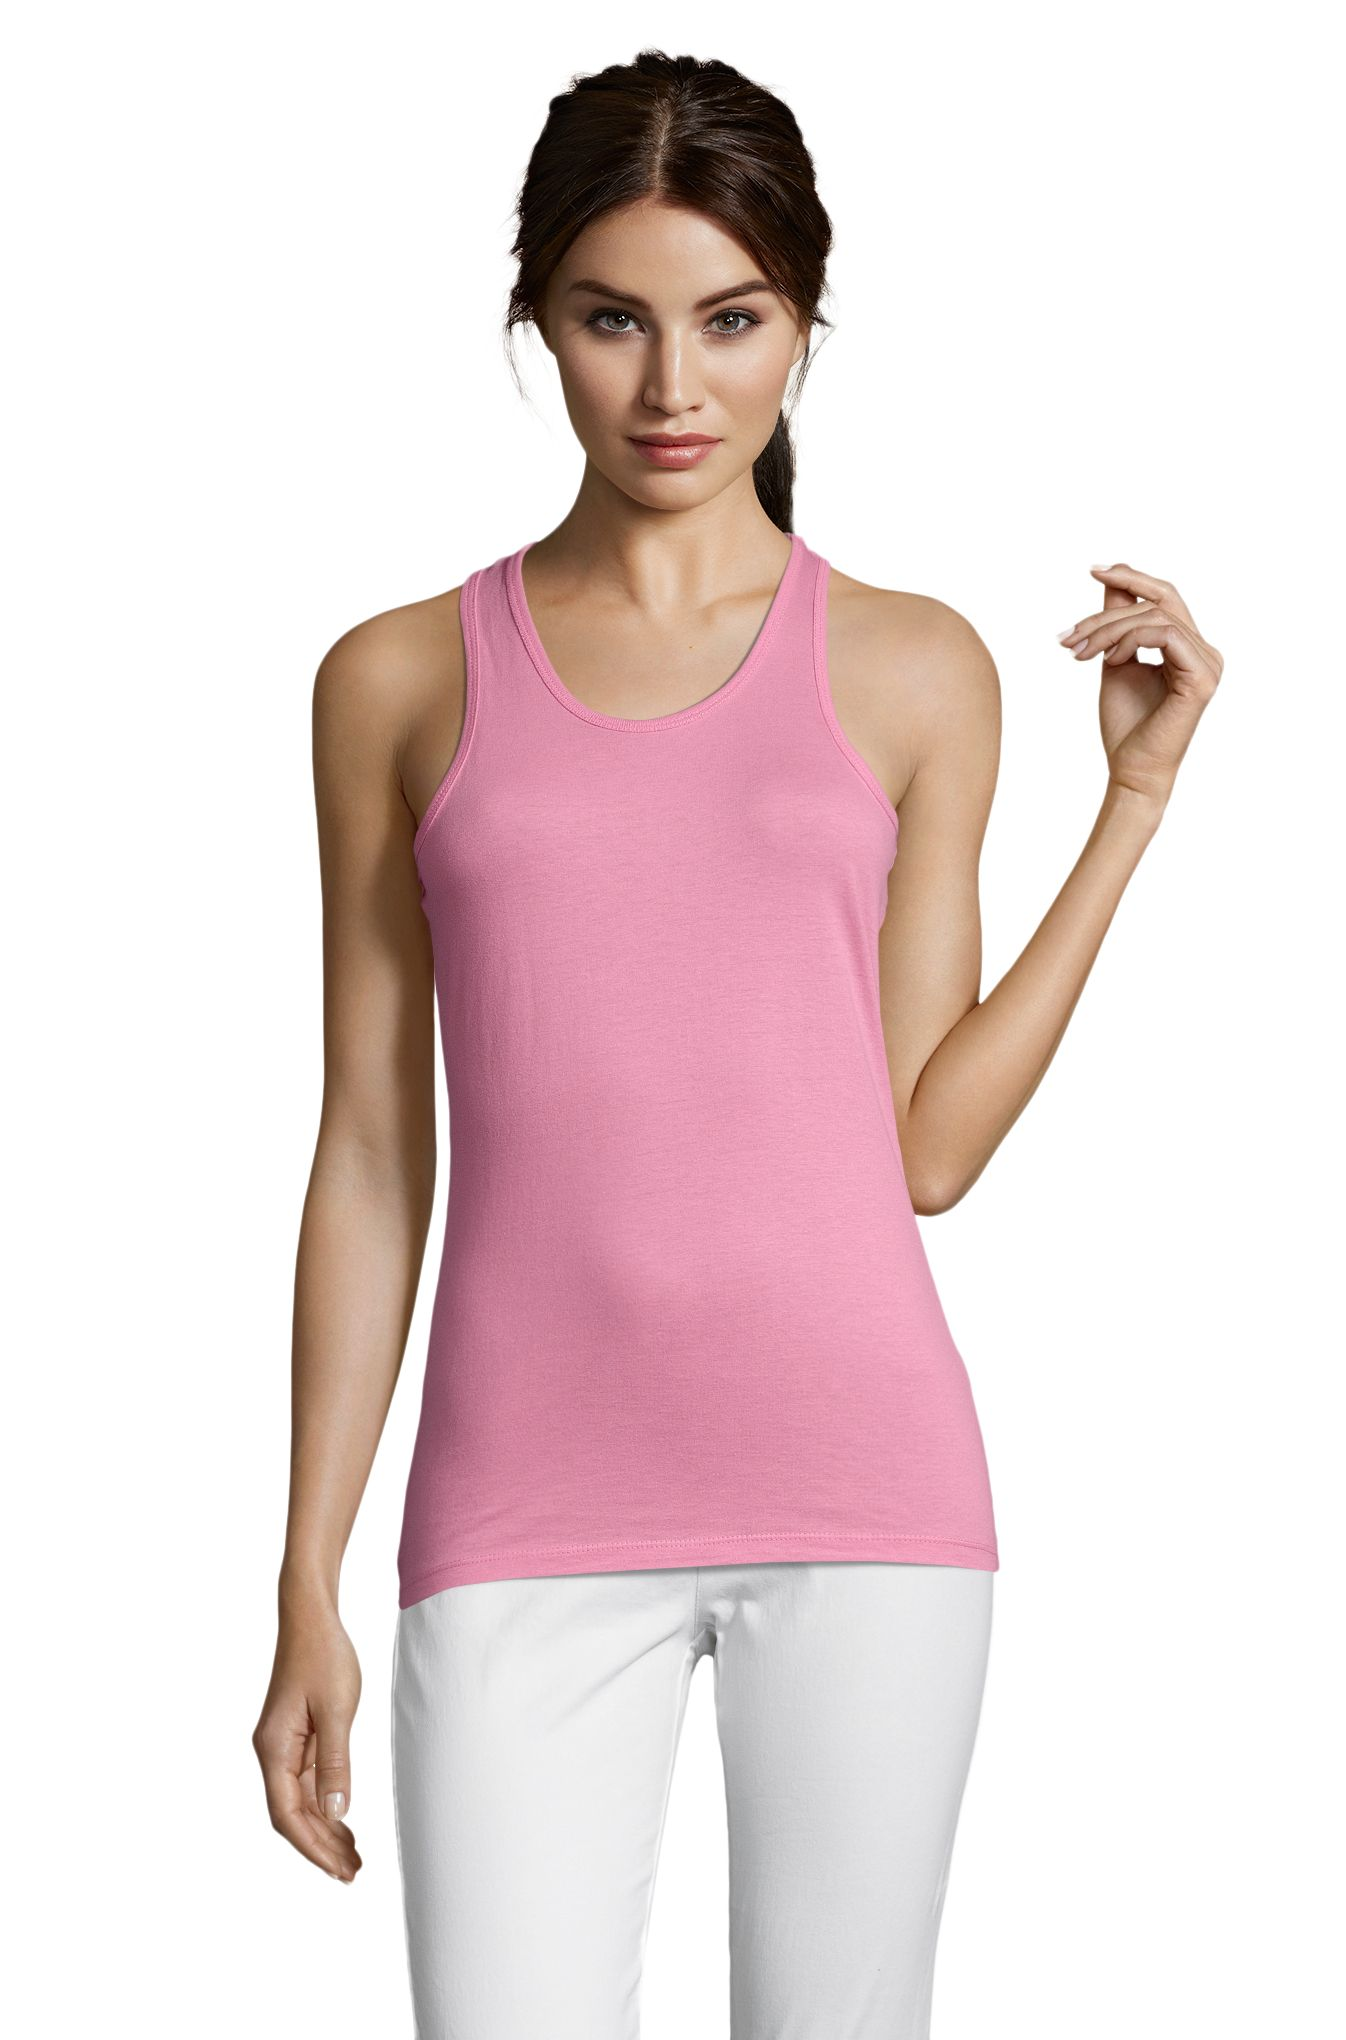 136 - Orchid pink